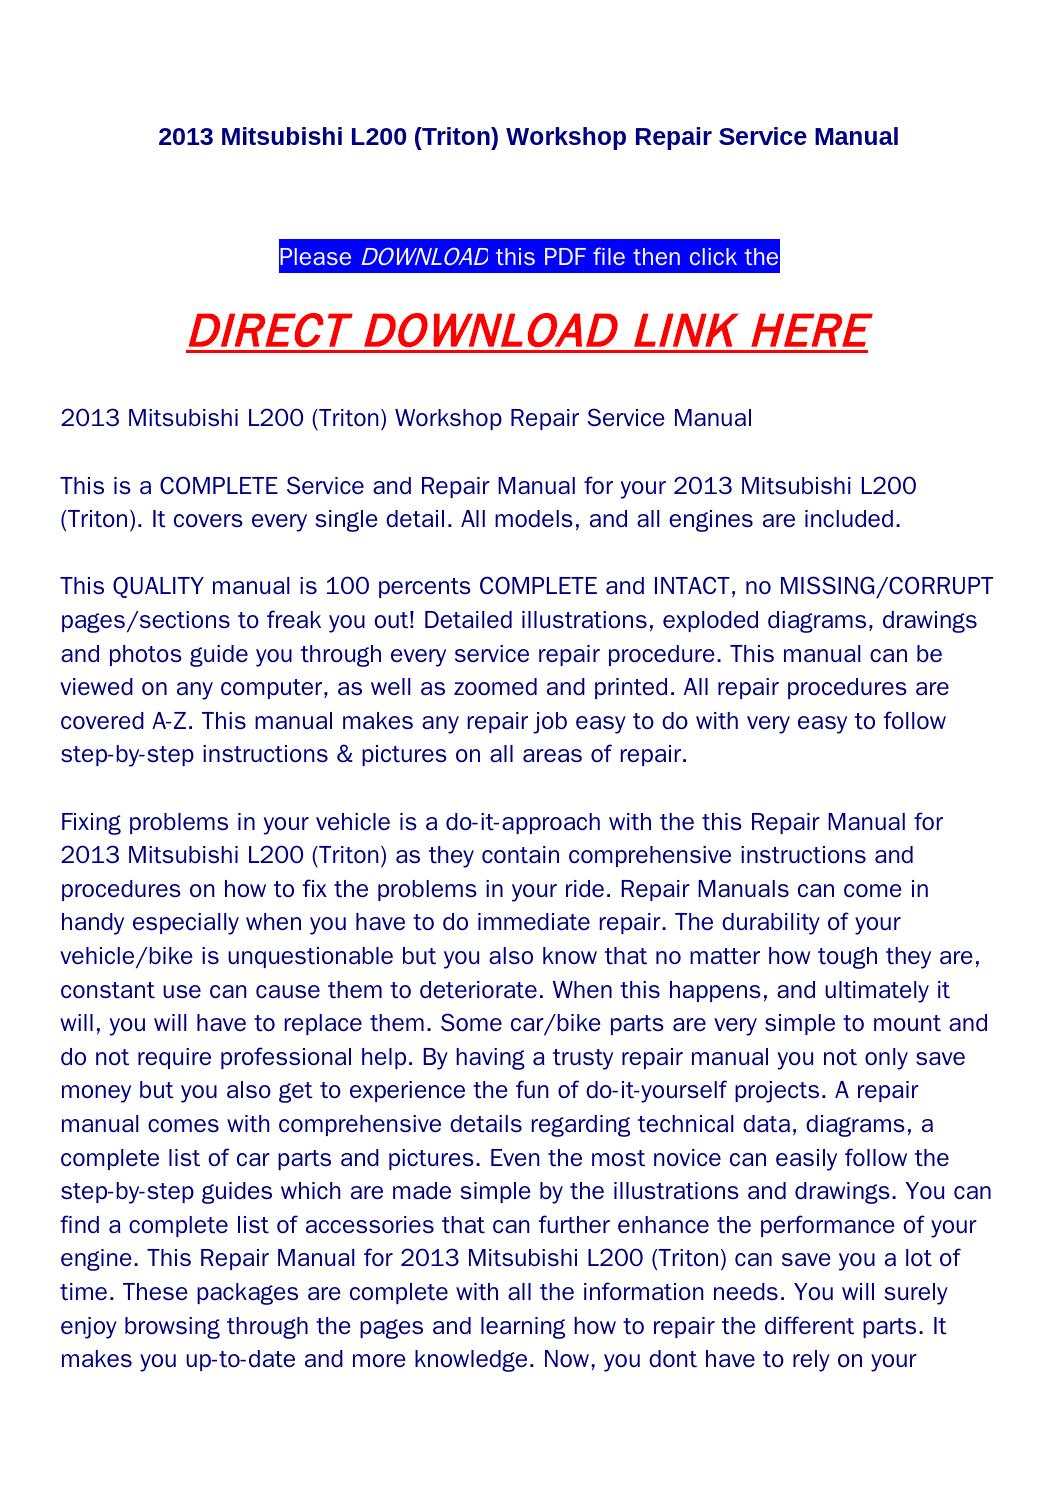 hight resolution of 2013 mitsubishi l200 triton workshop repair service manual by huou issuu